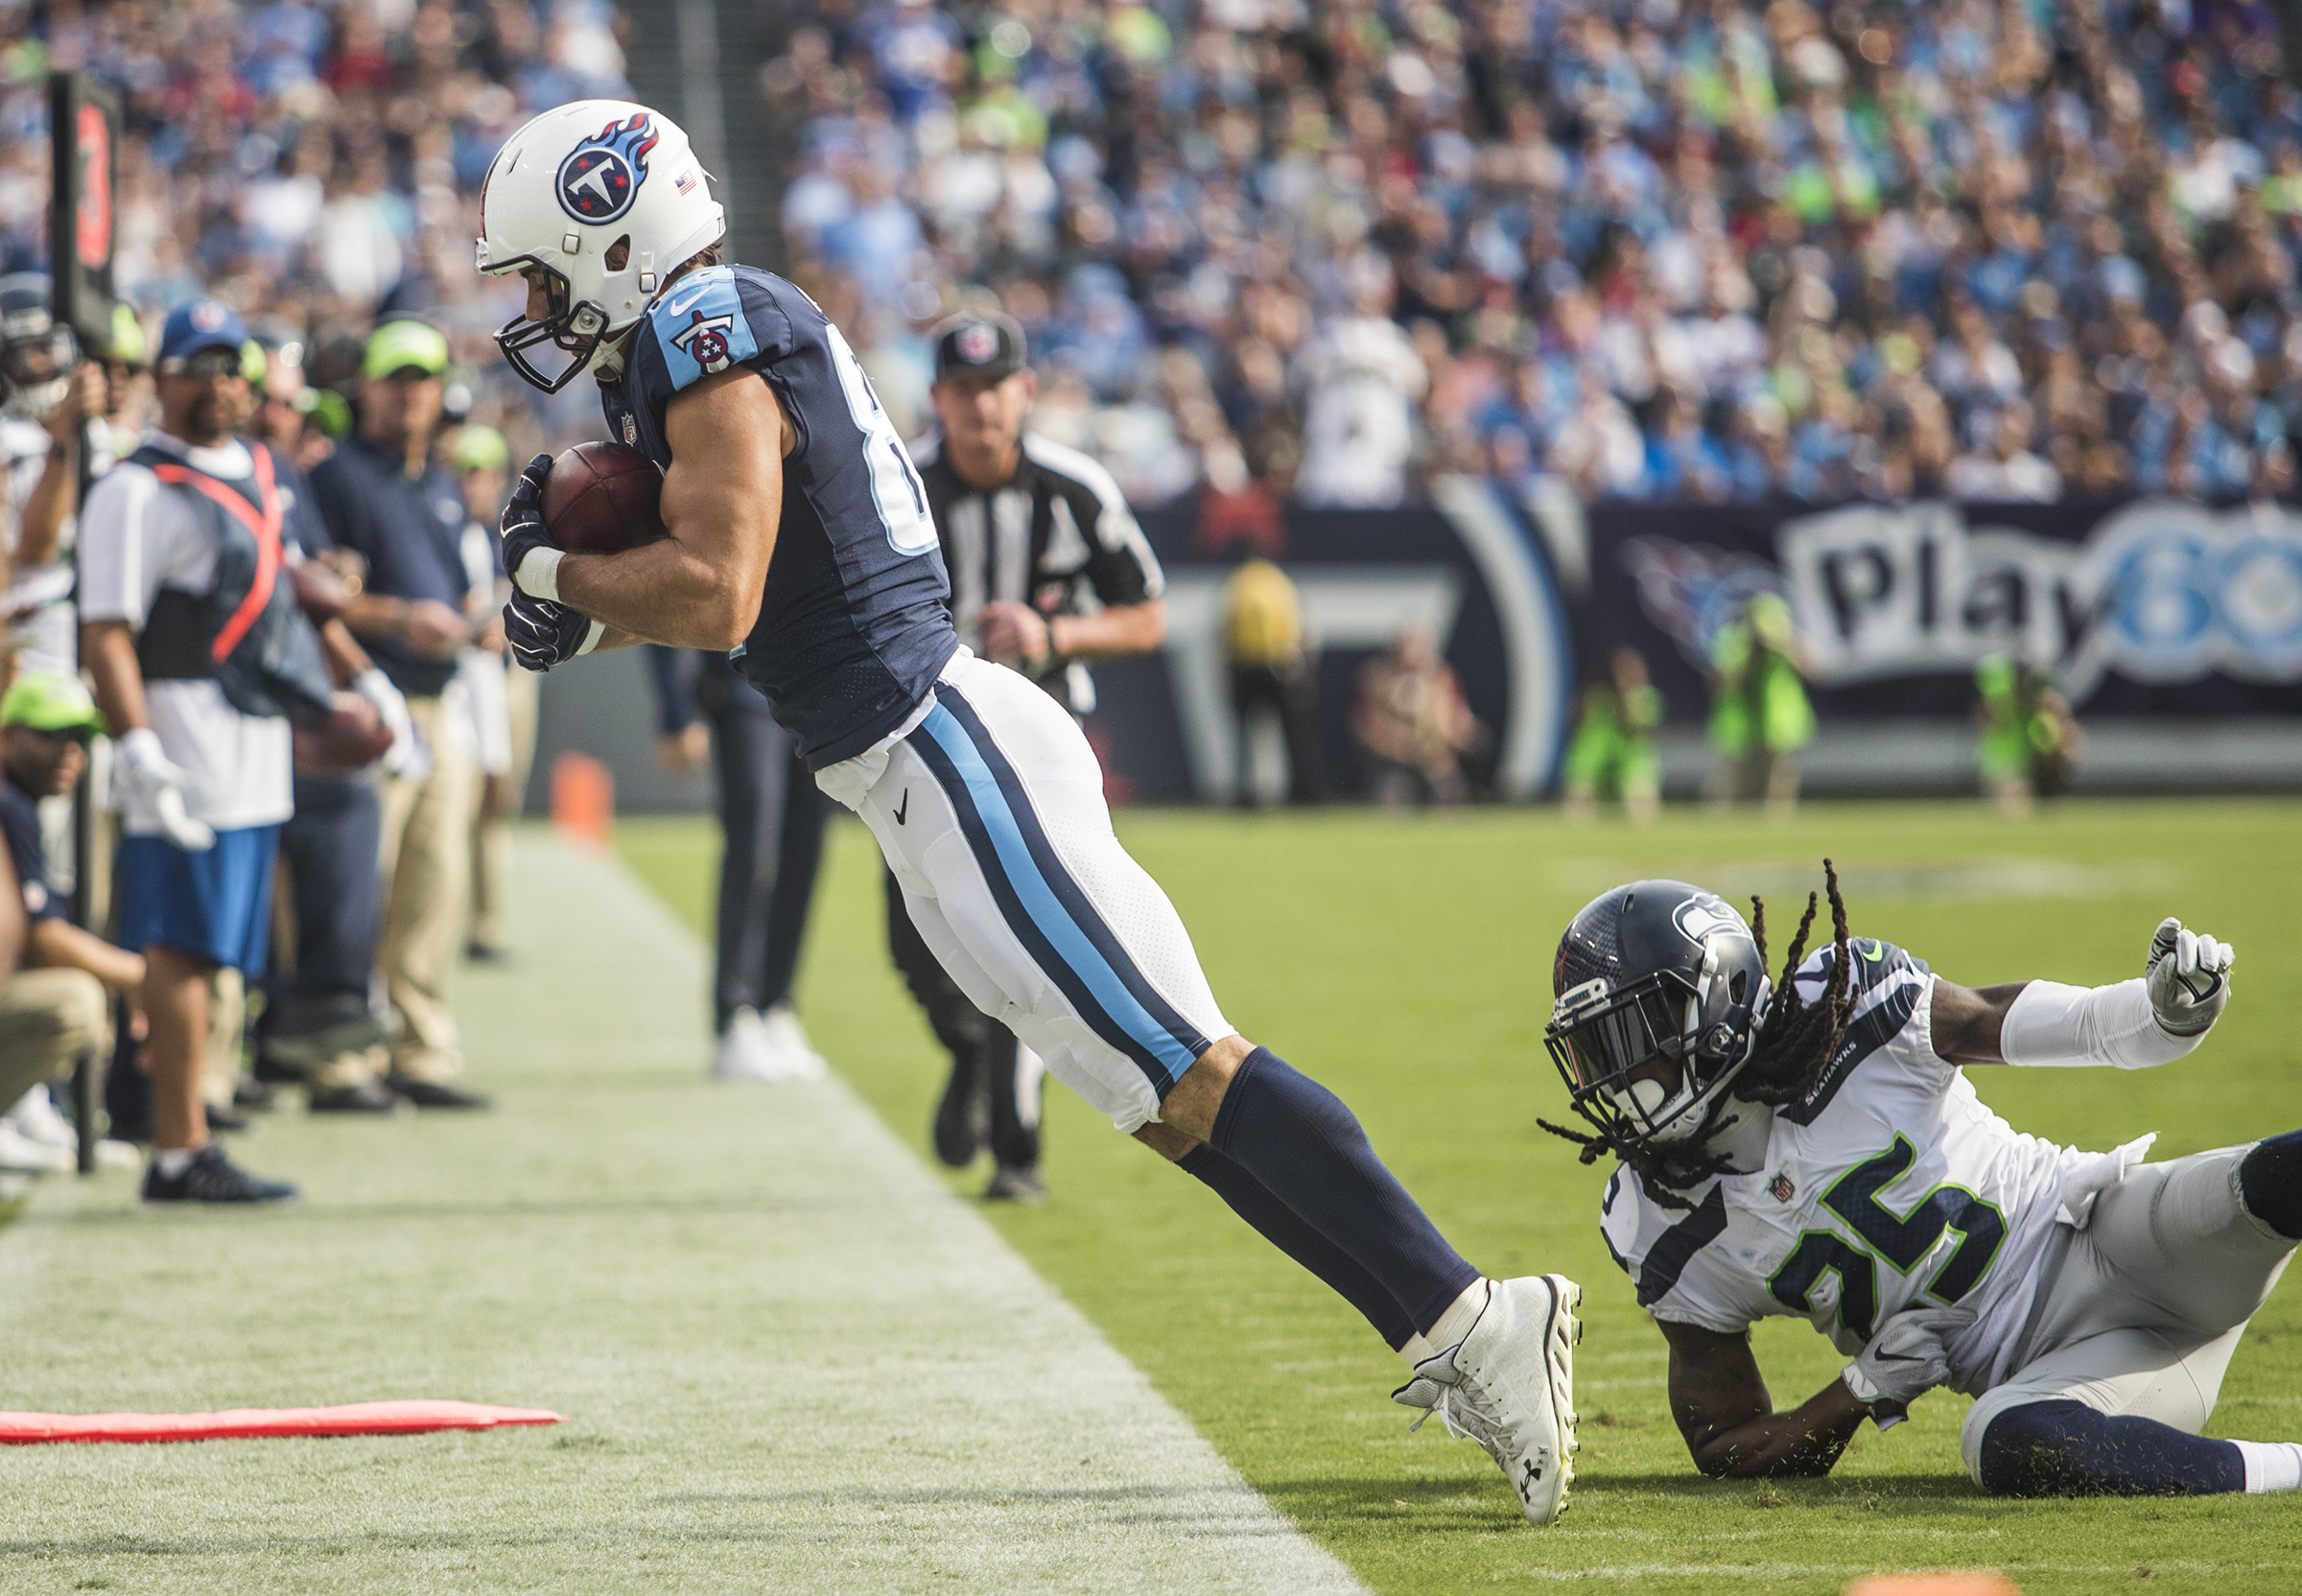 Tennessee Titans wide receiver Eric Decker (87) makes a catch on the sideline while guarded by Seattle Seahawks cornerback Richard Sherman (25) during the Titans' 33-27 win over Seattle on Sunday, Sept. 24, 2017, at Nissan Stadium.